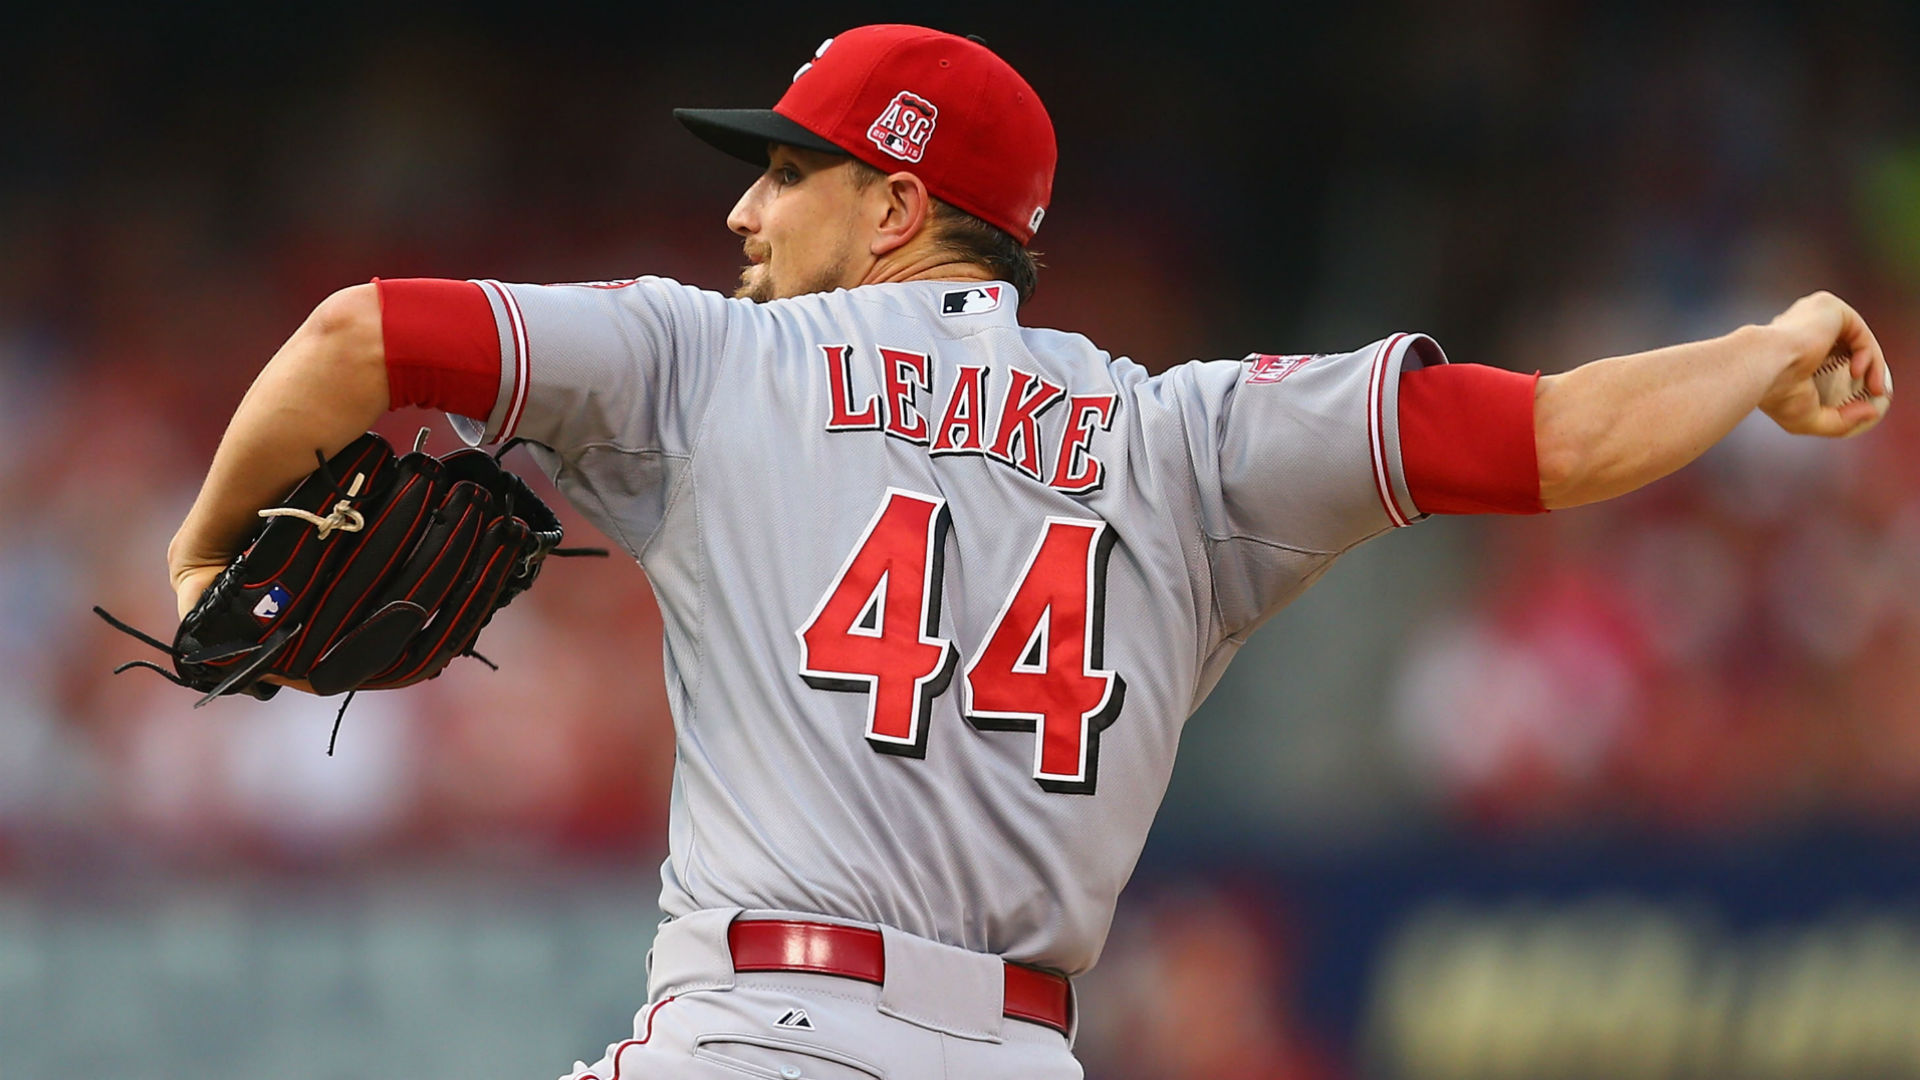 Giants acquire pitcher Mike Leake from Reds